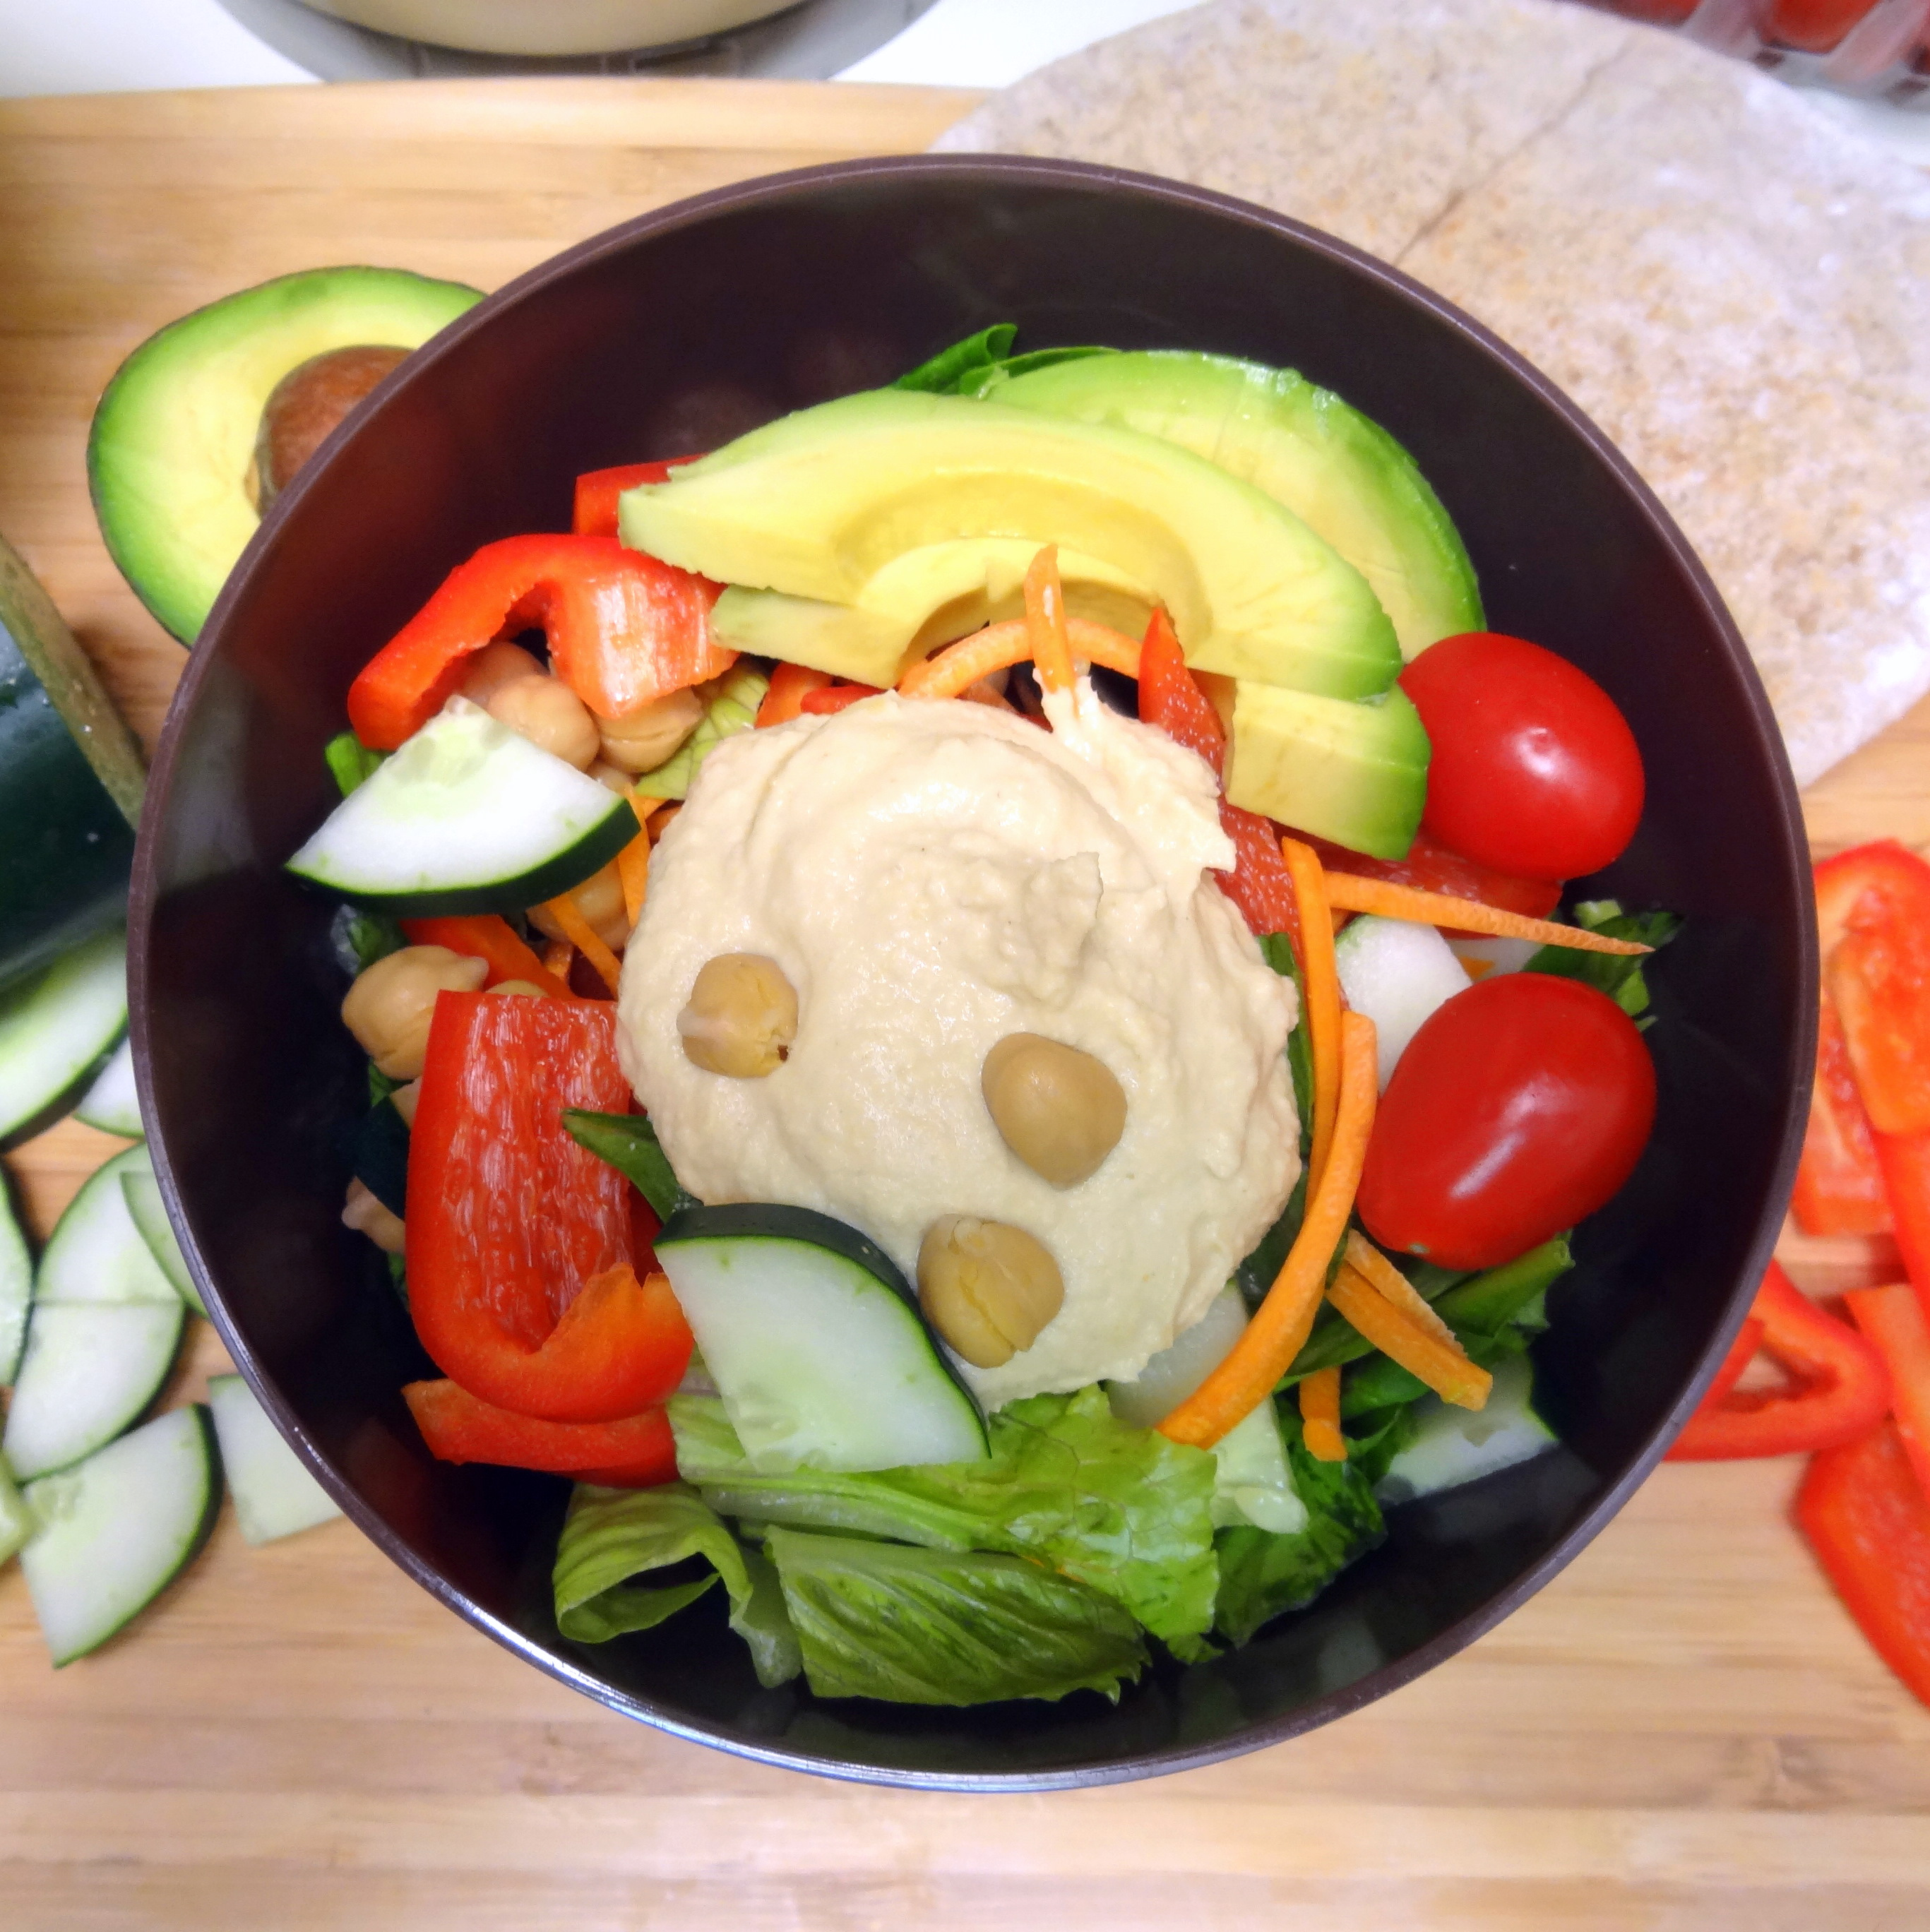 Milkless Monday: Hummus Salad